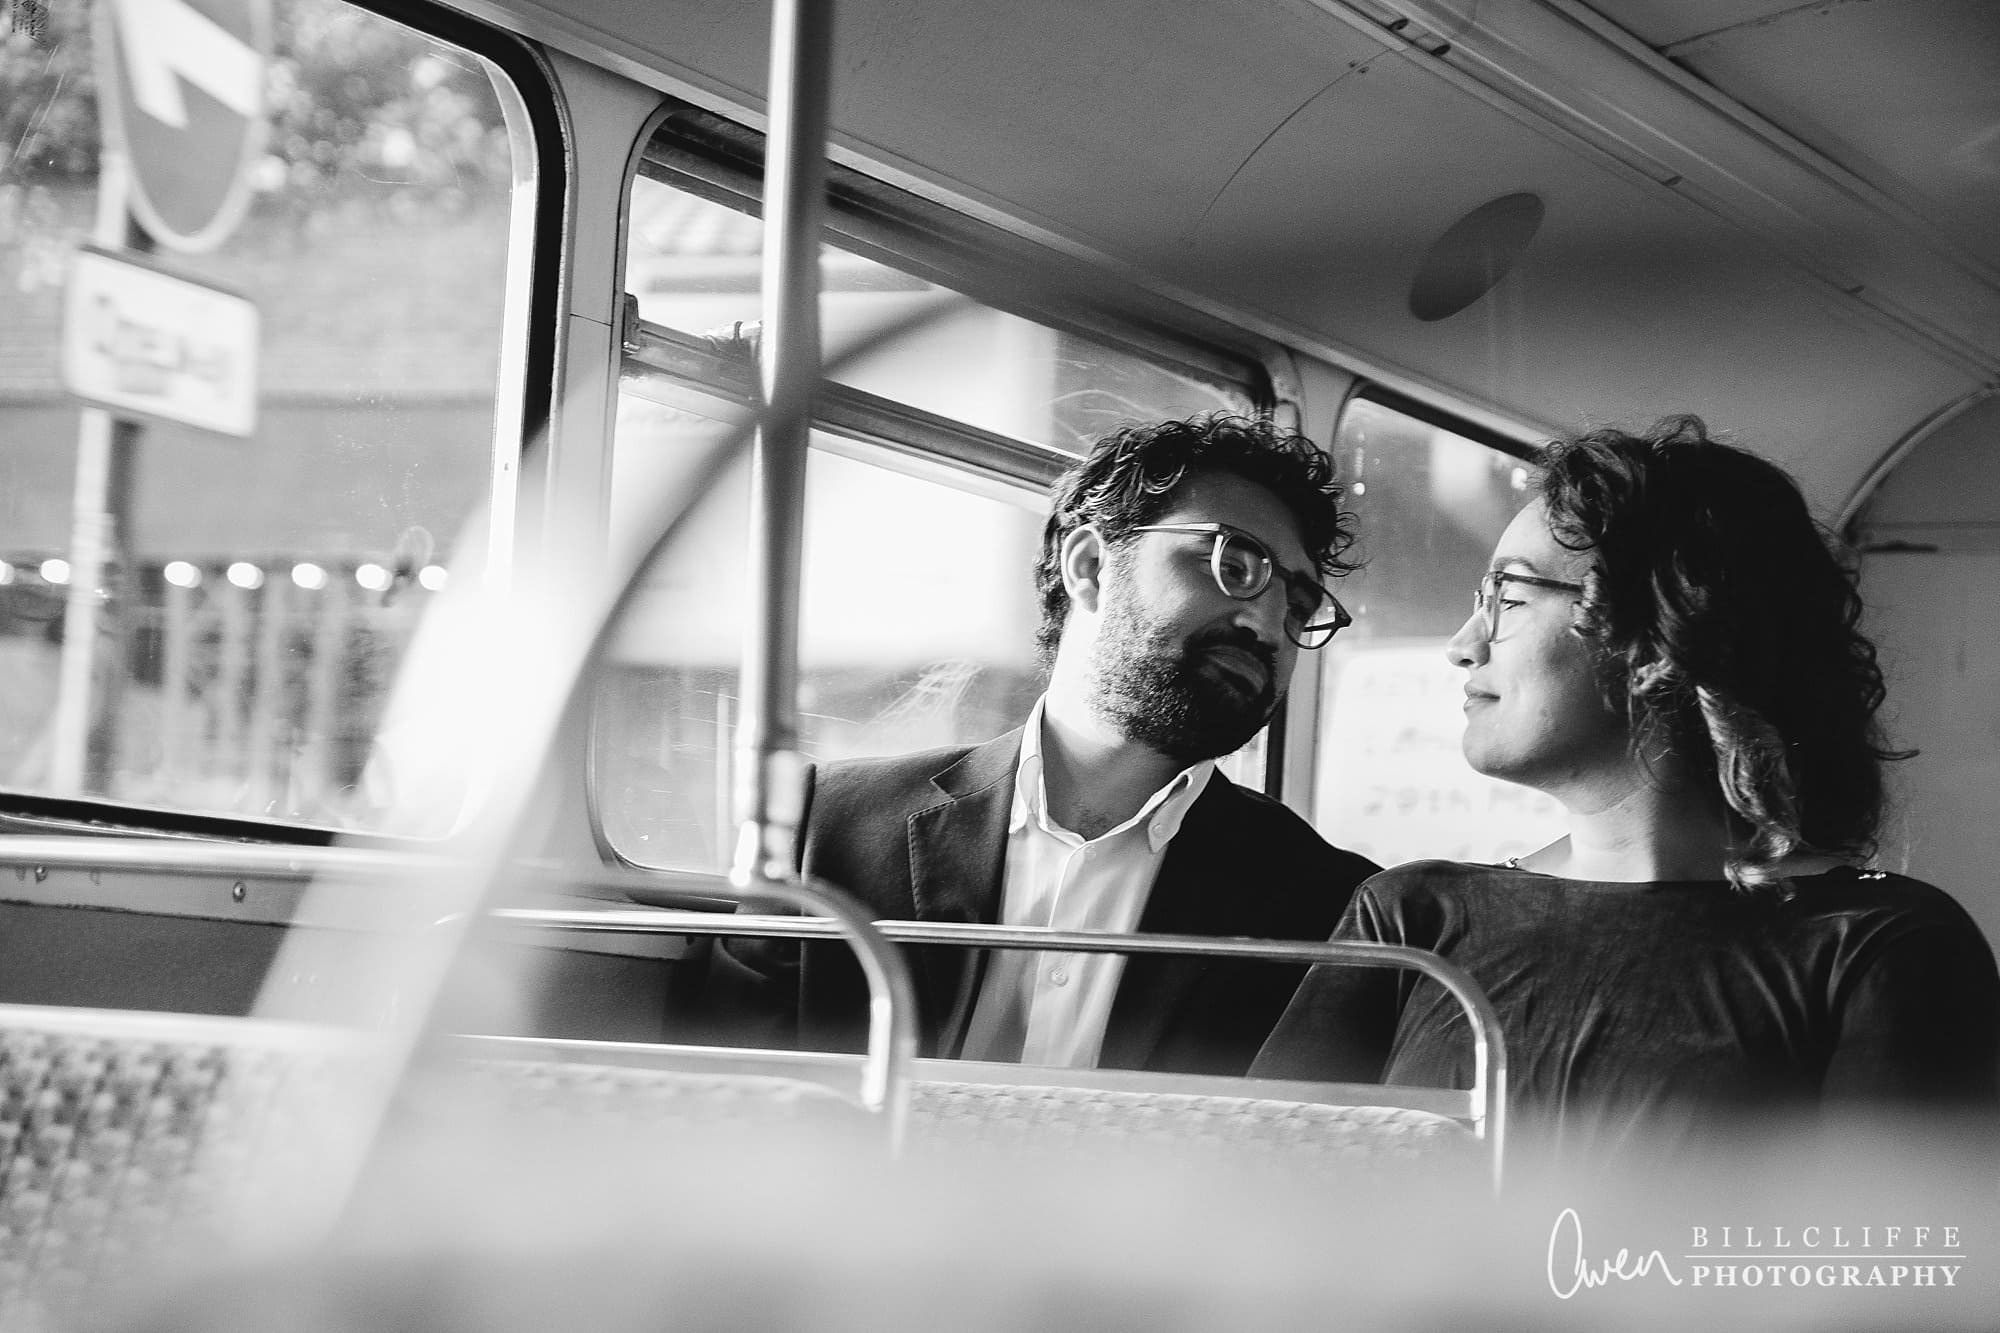 london engagement proposal photographer routemaster gr 011 - A Romantic Marriage Proposal on a London Routemaster Bus